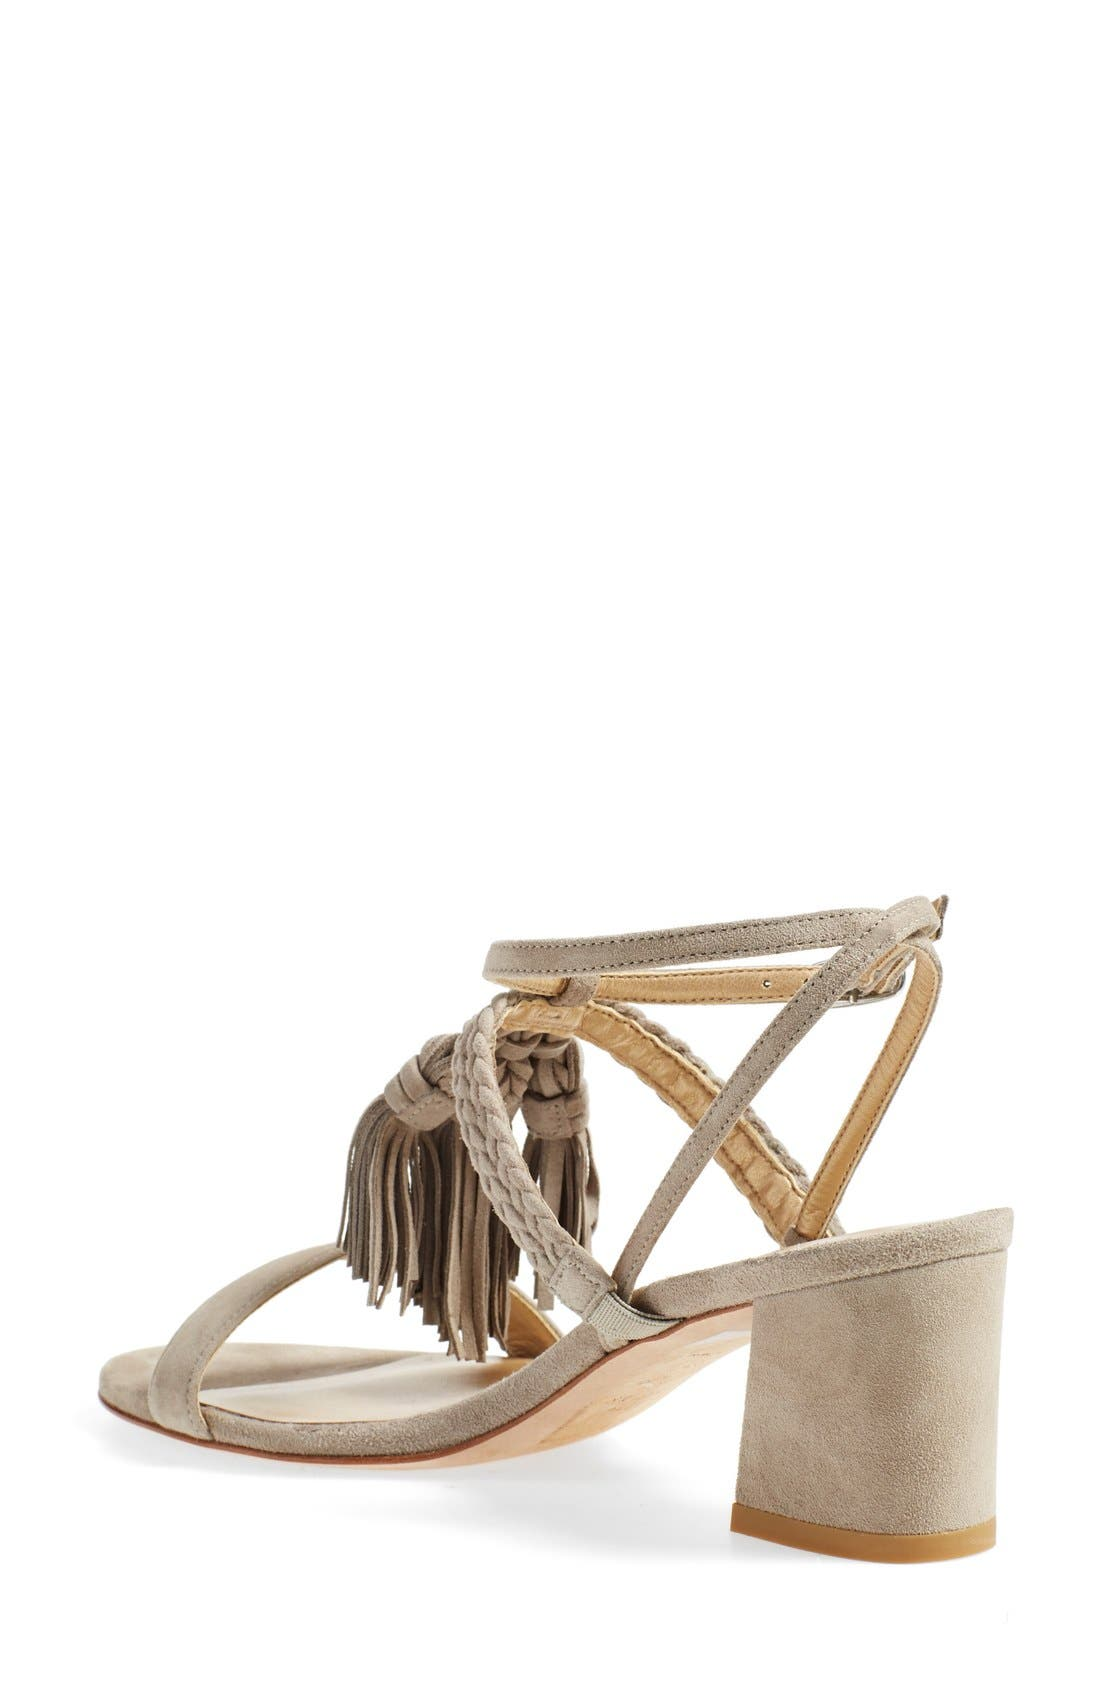 'Tasselmania' Strappy Sandal,                             Alternate thumbnail 11, color,